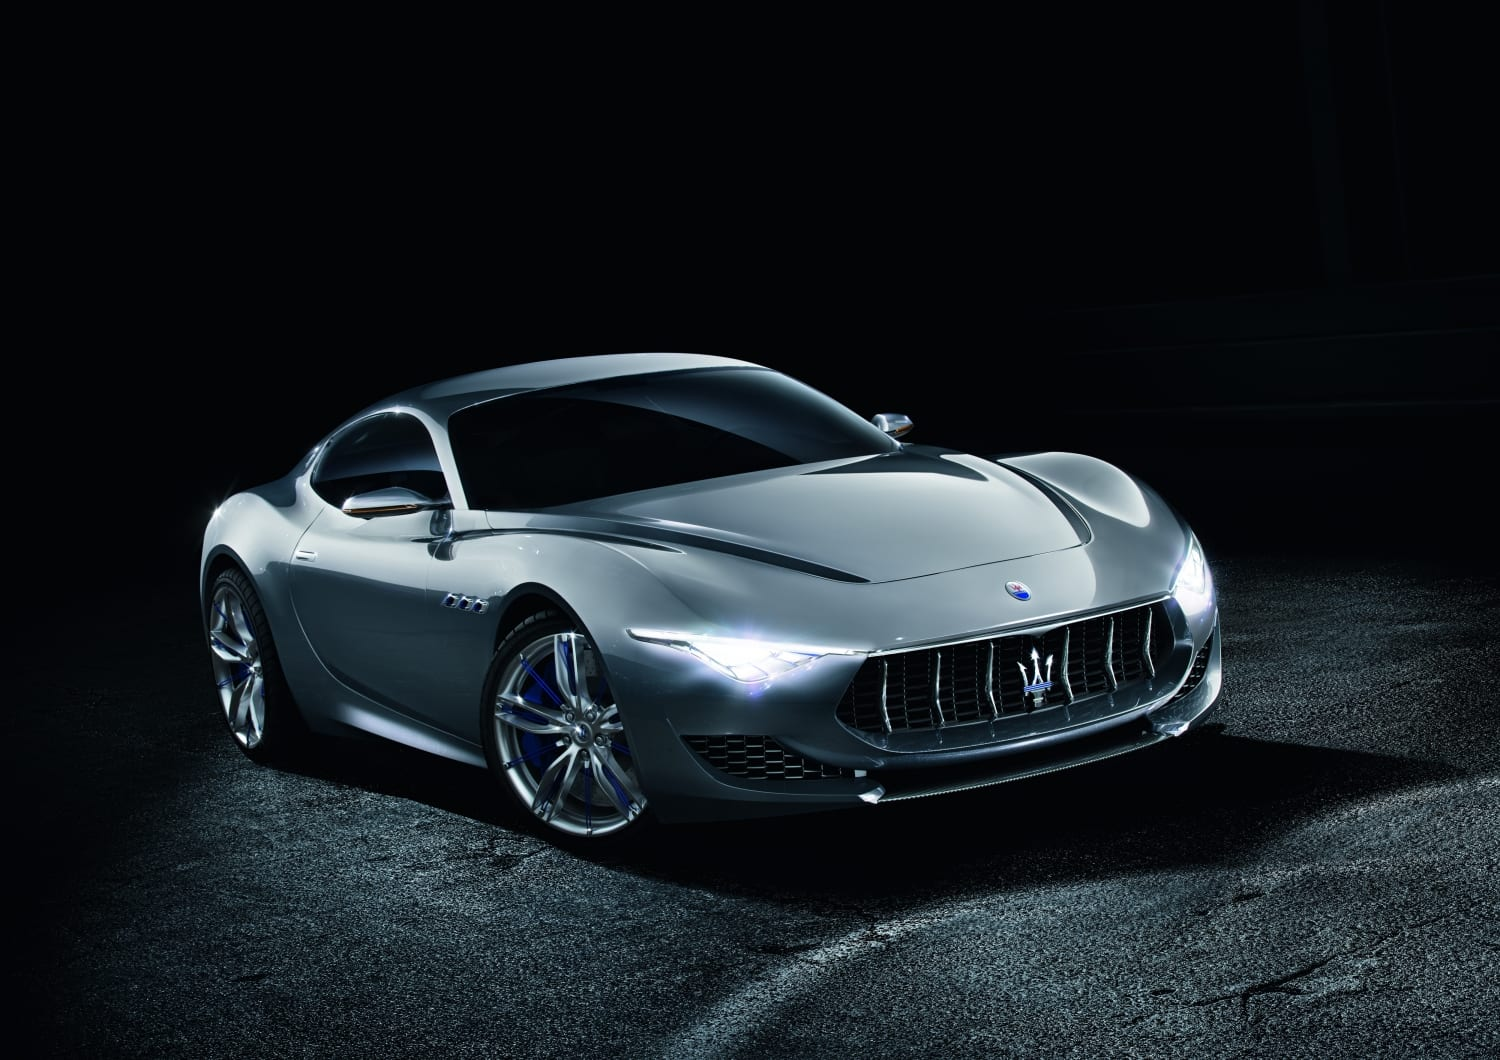 Electric Maserati Alfieri: 0-60 Under 2 Sec.